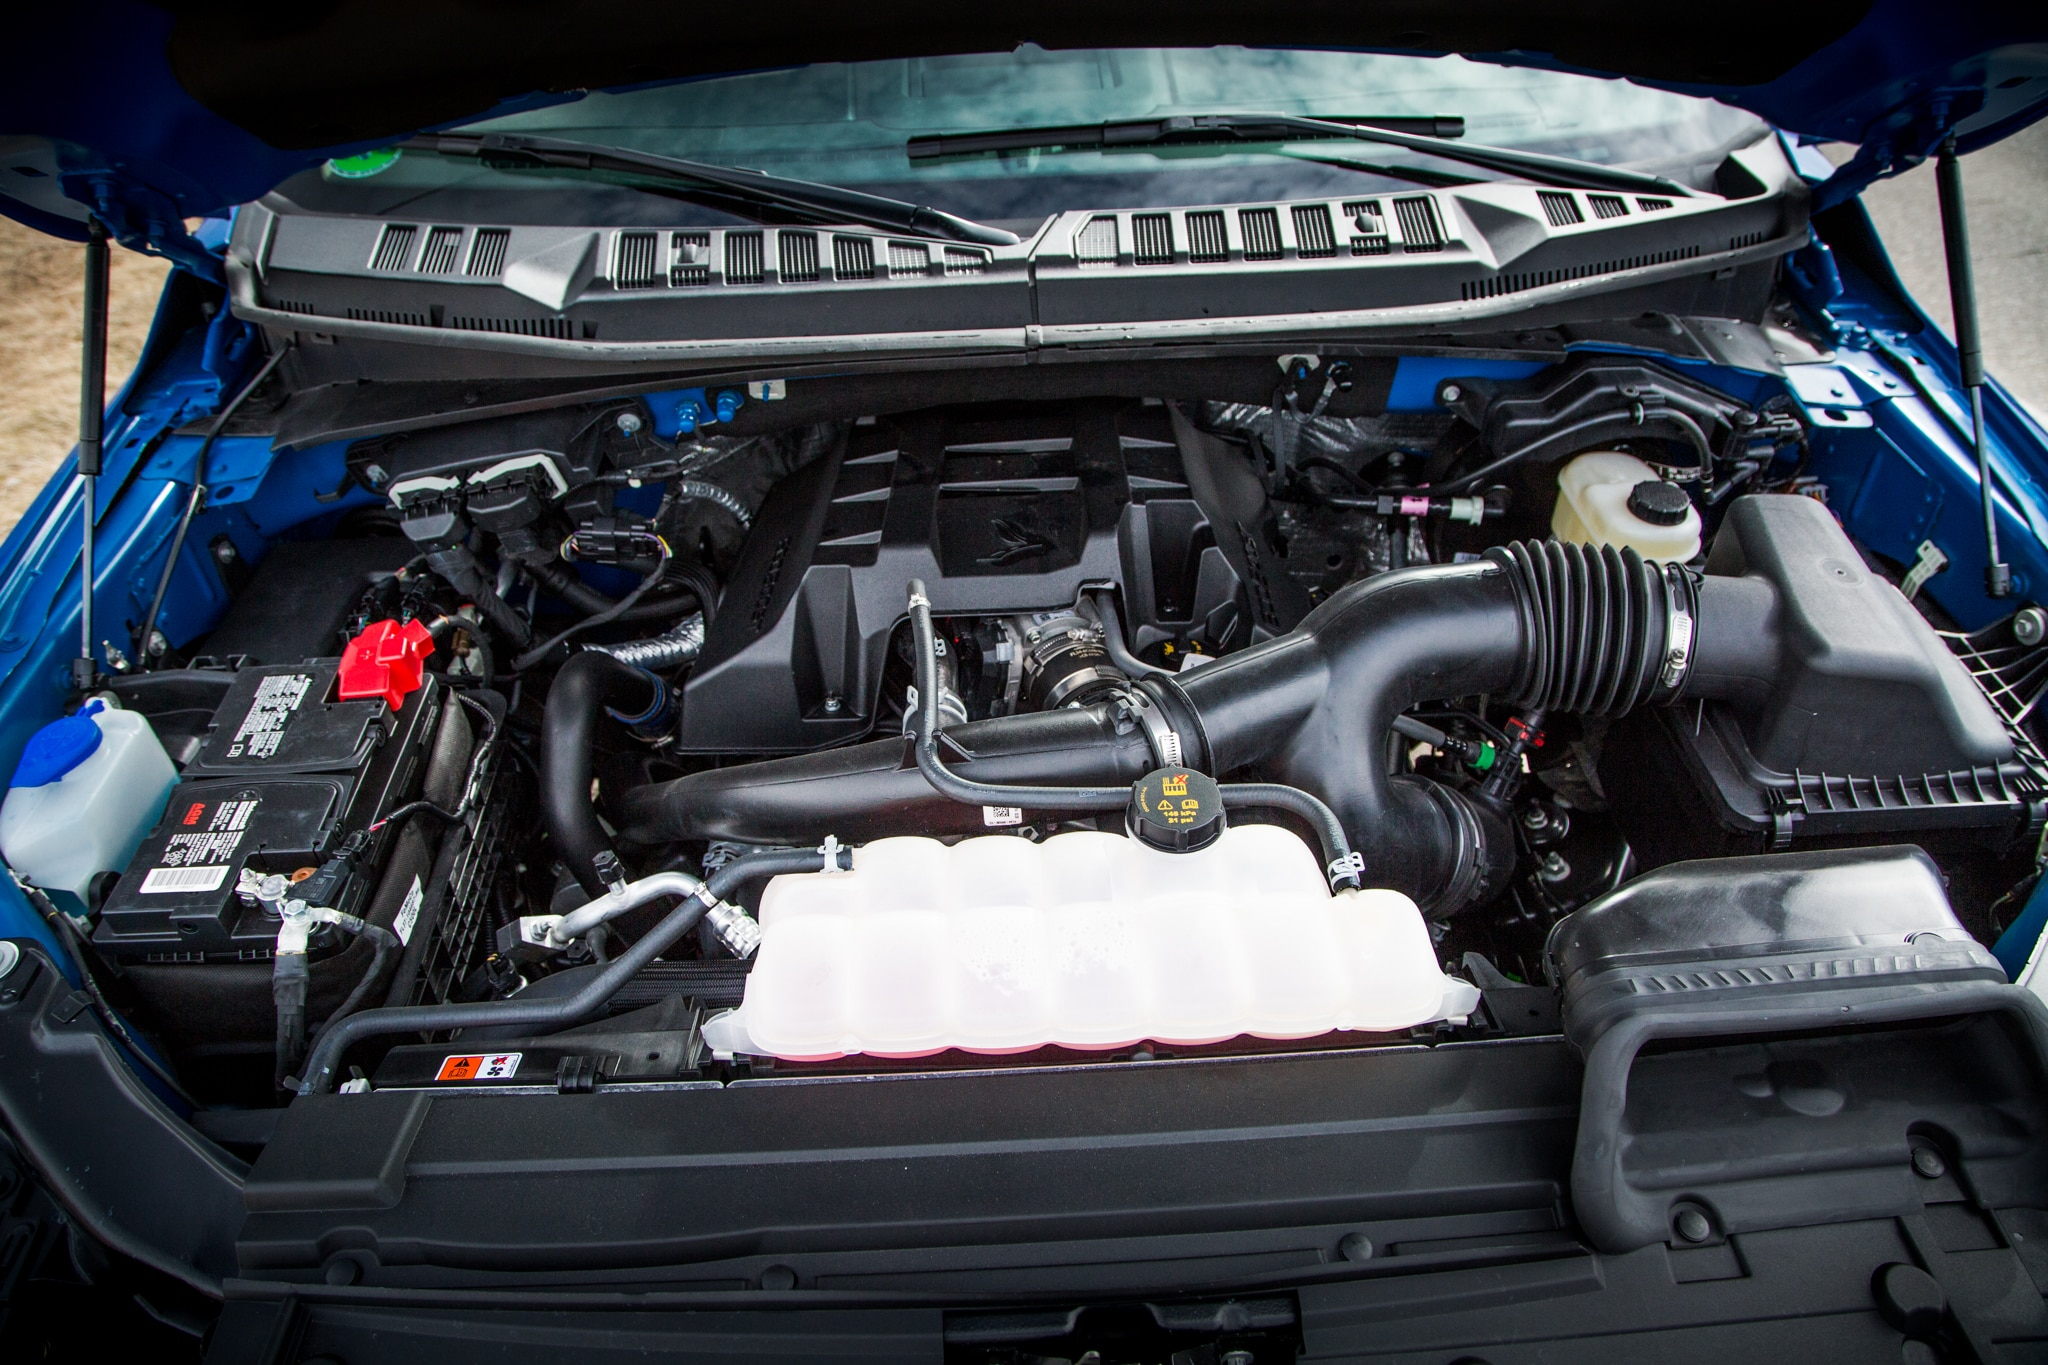 2015 Ford F-150 XLT Supercab 4x4 2.7-liter EcoBoost Review